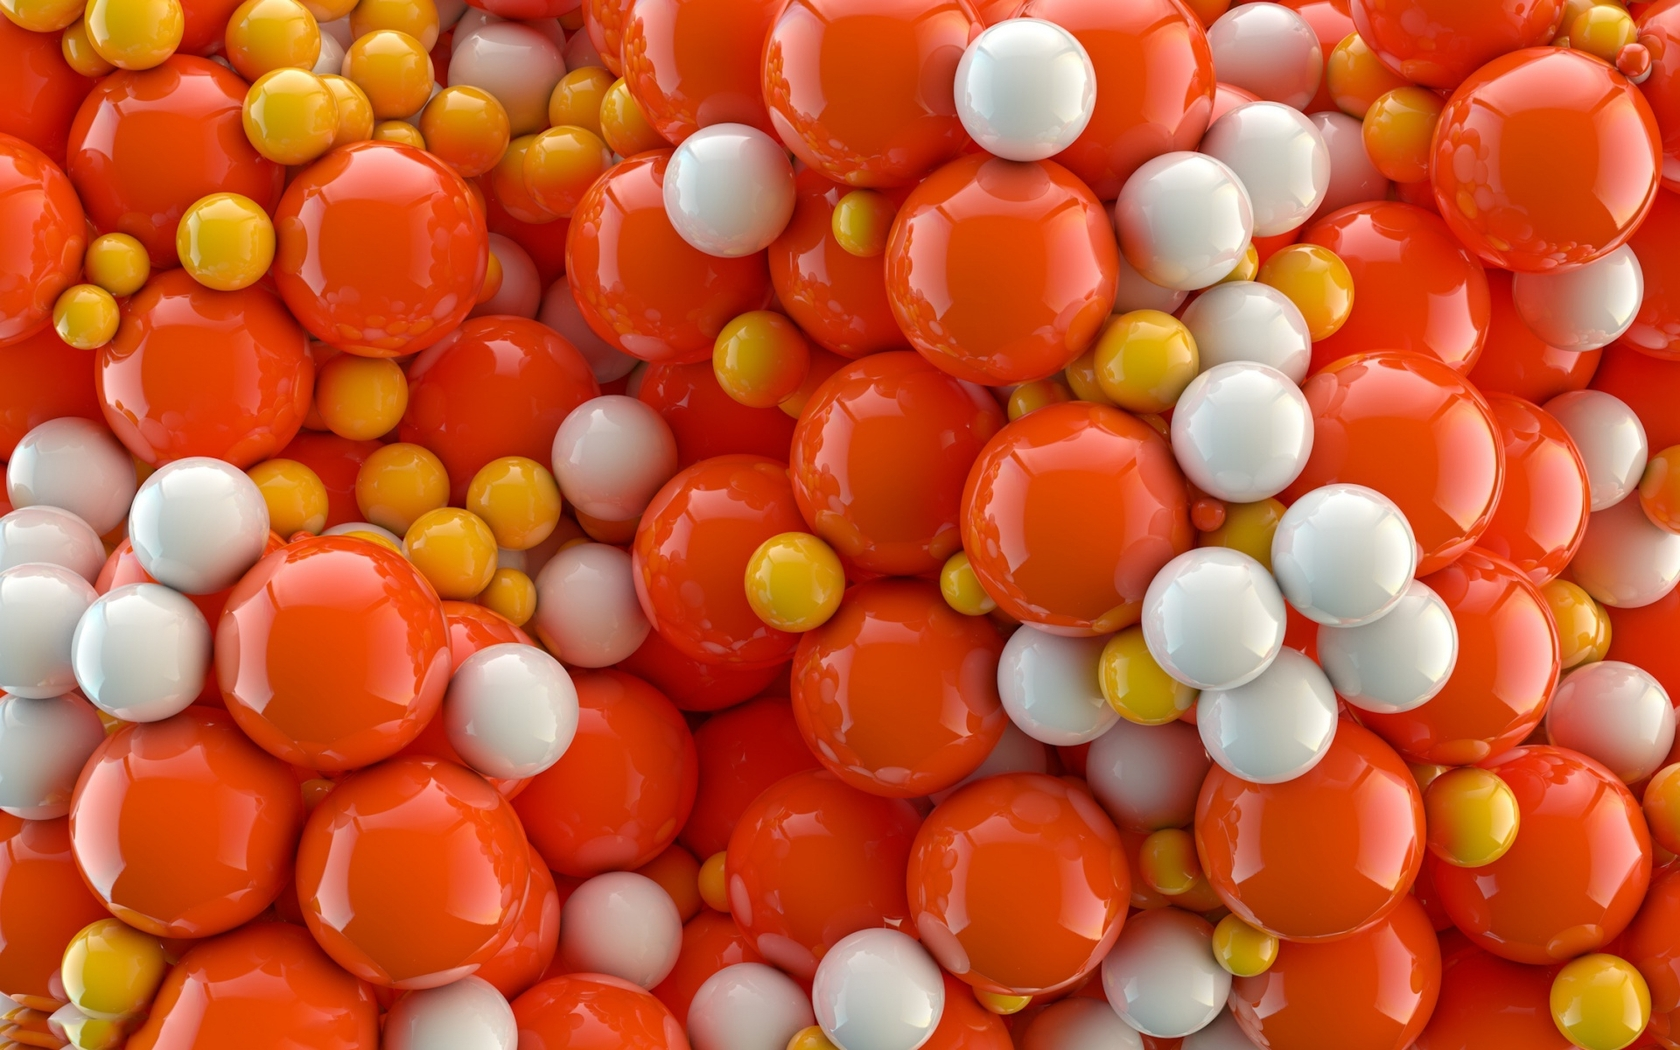 Download Orange and white balls wallpaper 1680x1050